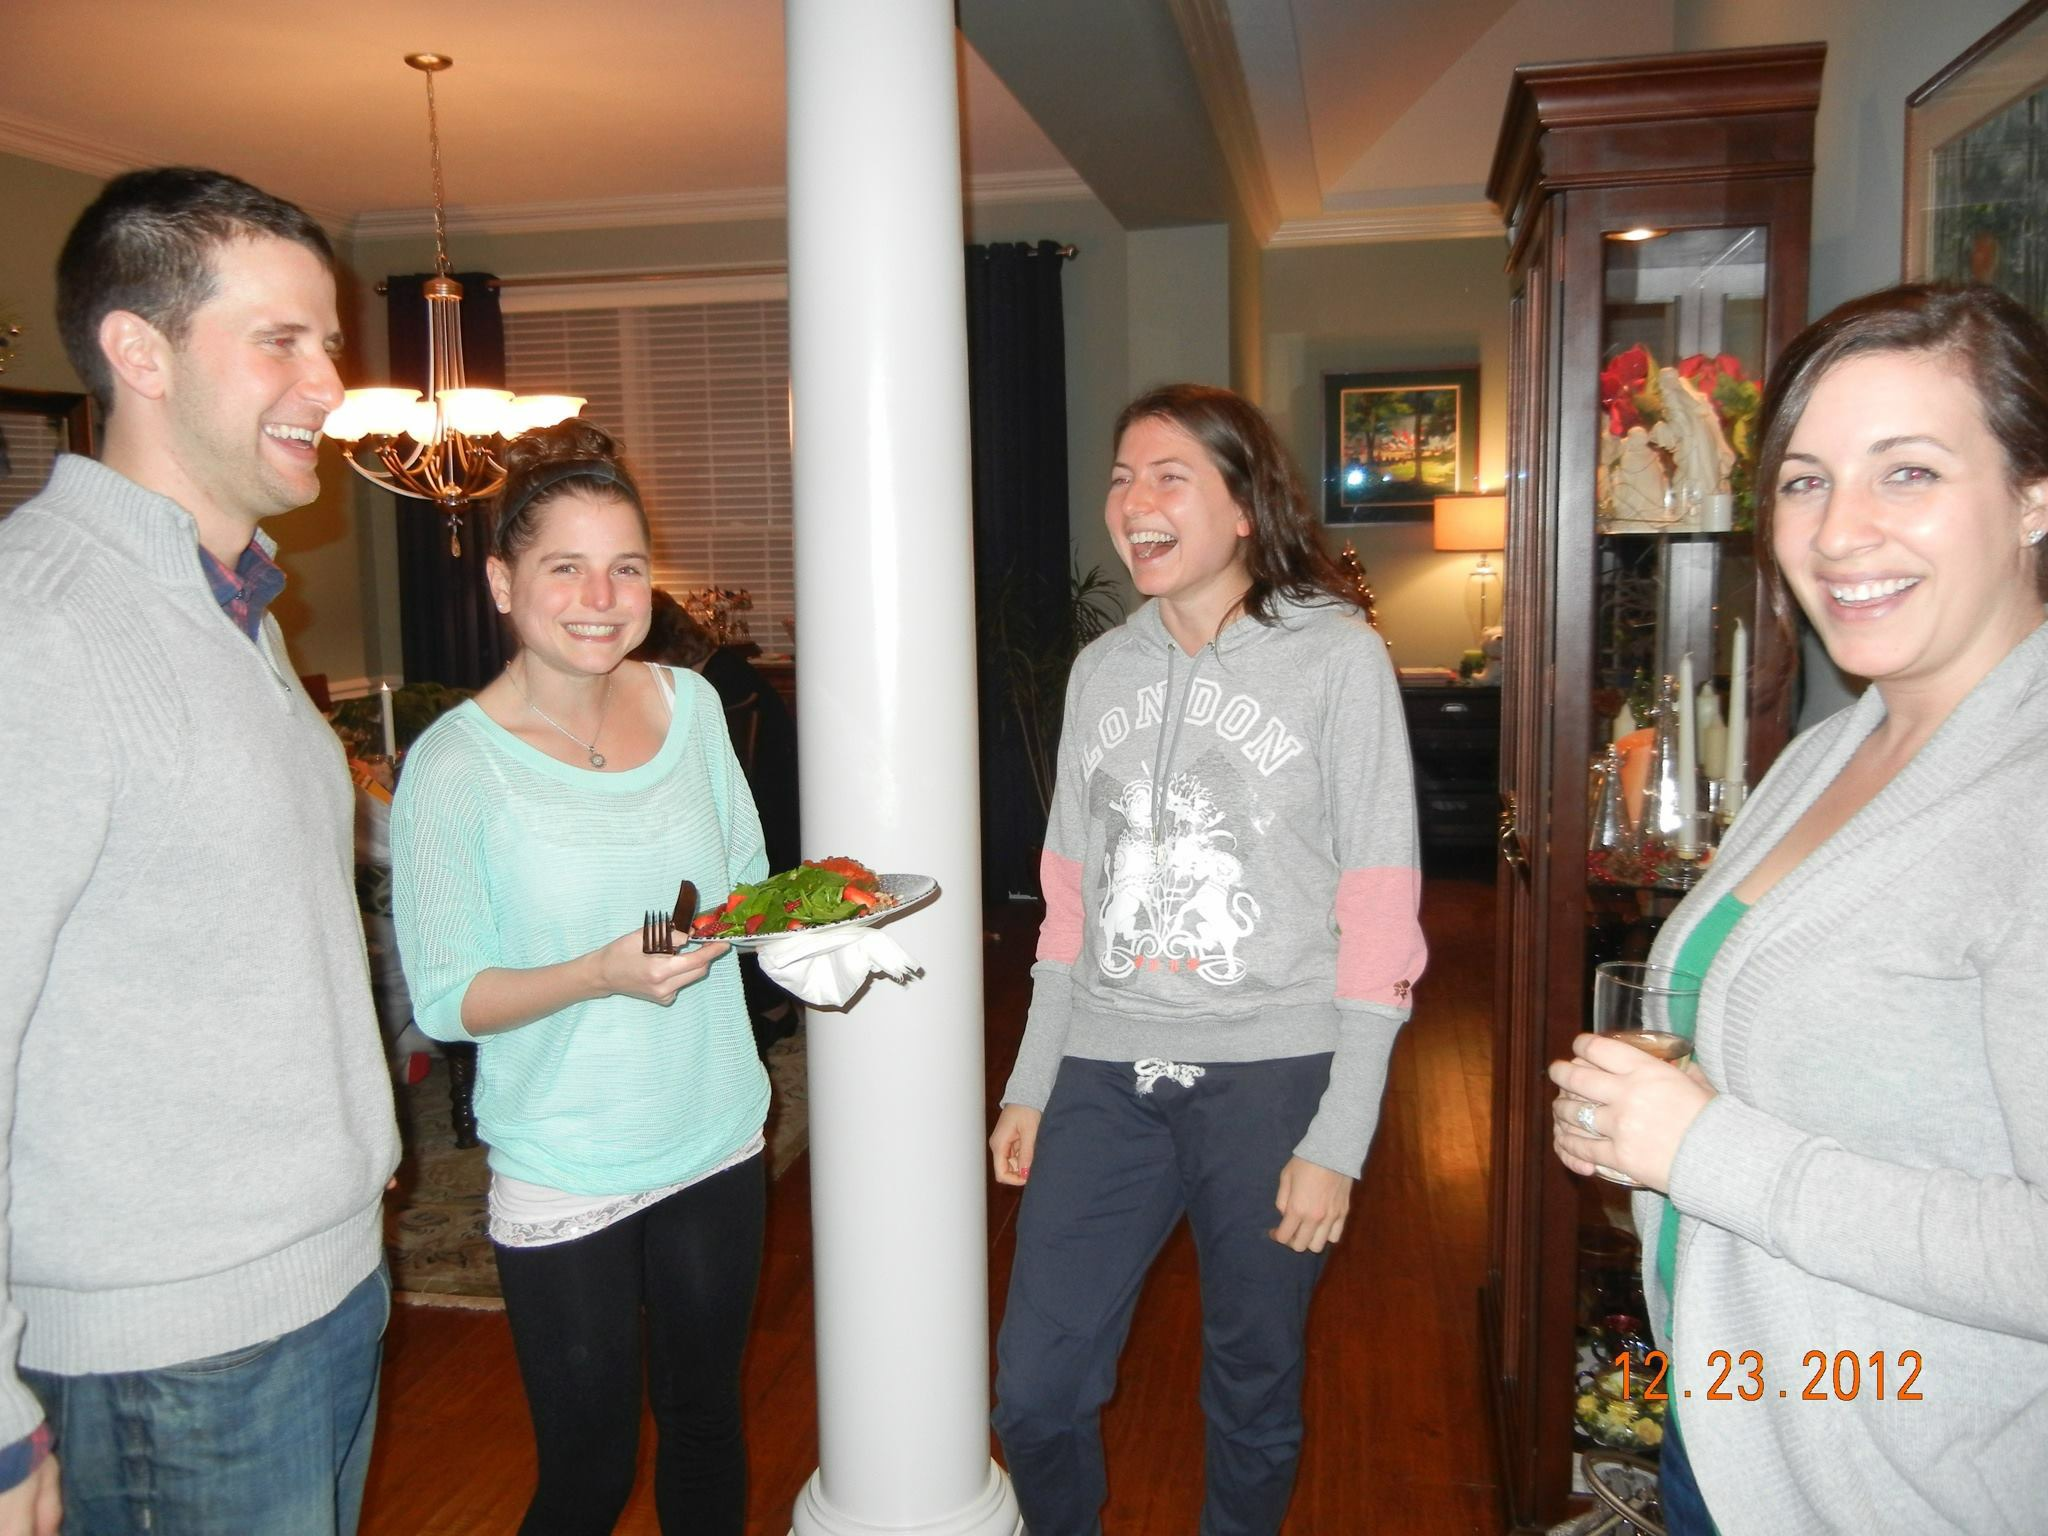 Ian, my sister Jill, me, and Ian's wife Sarah at Christmas at Aunt Judy's house in 2012.